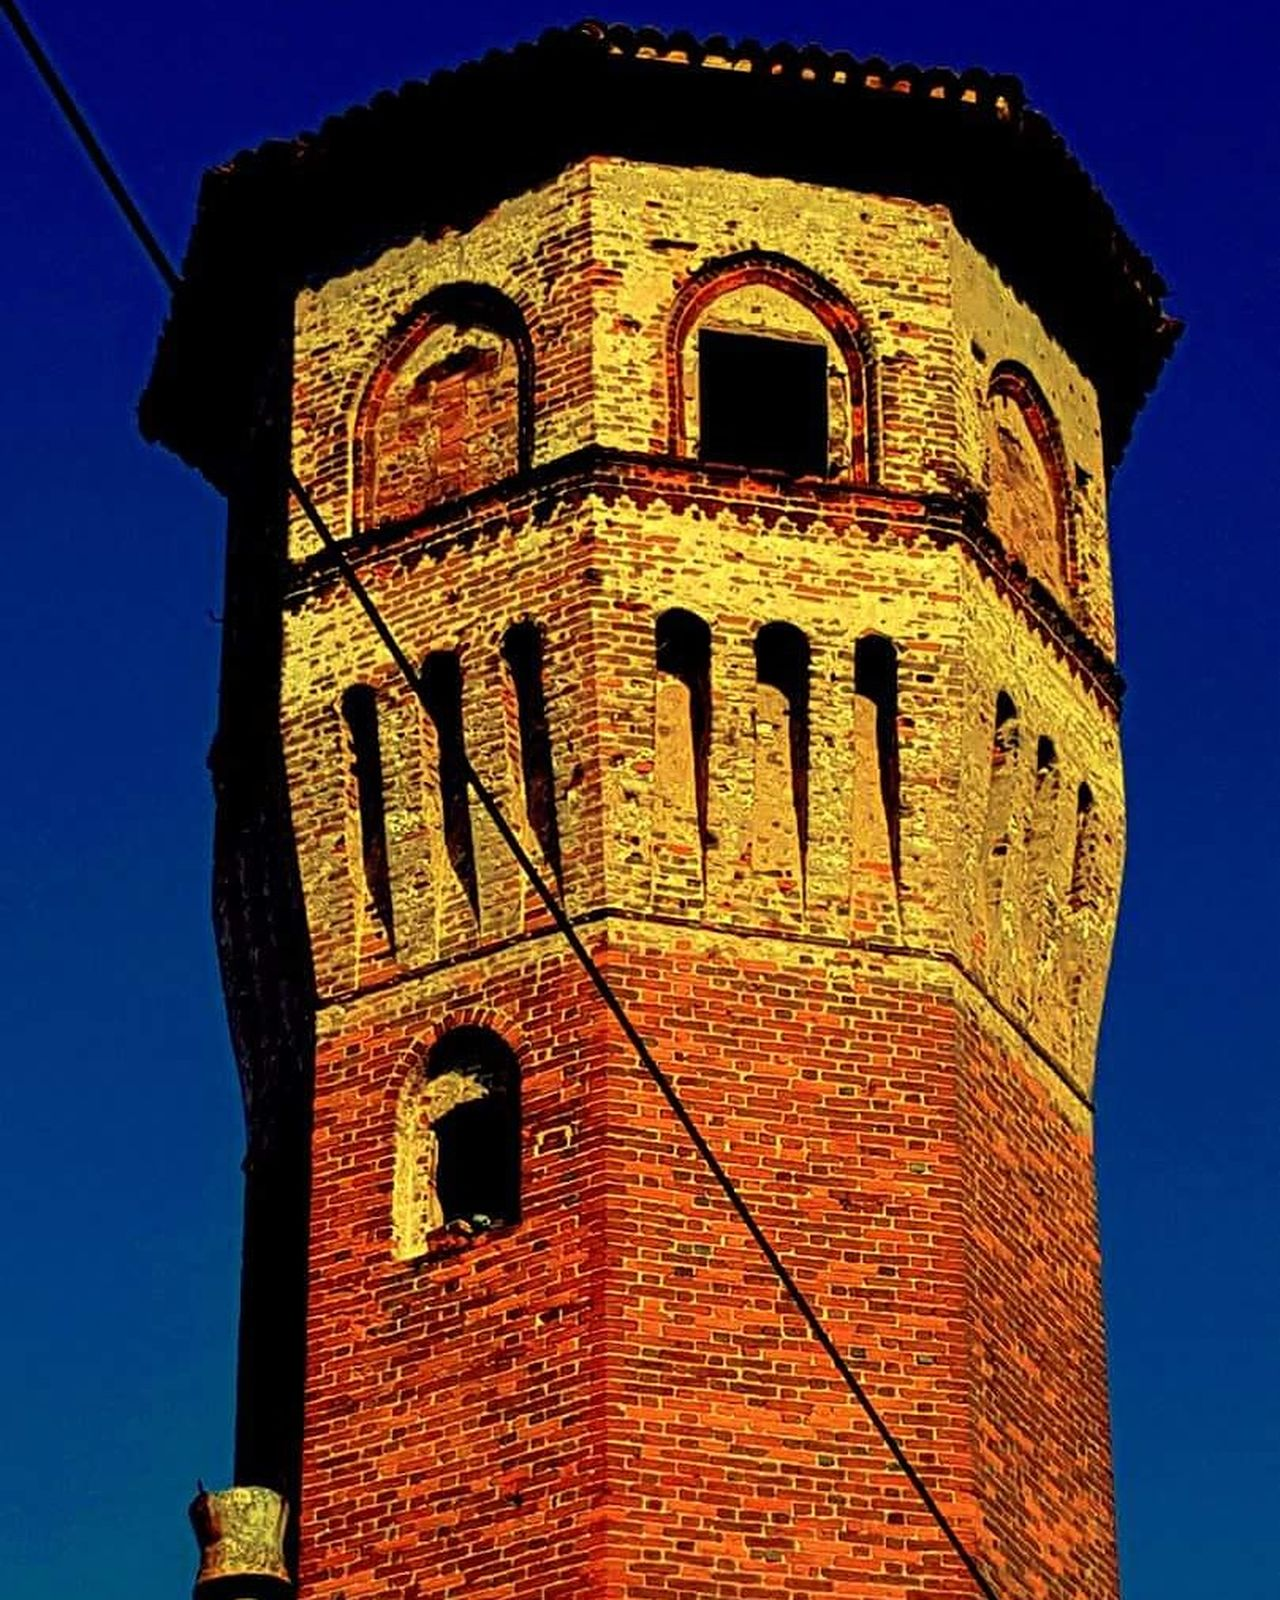 Vercelli Piemonte Piemonte_super_pics Piemonteturismo Piemonte_city Piemonte_best_pics Piemonte👍🏻 Piemontese Piemontexperience Piemonte_bestsunset History No People Sky Travel Destinations Outdoors Day Clear Sky Close-up Clock Clock Face Torre Tower